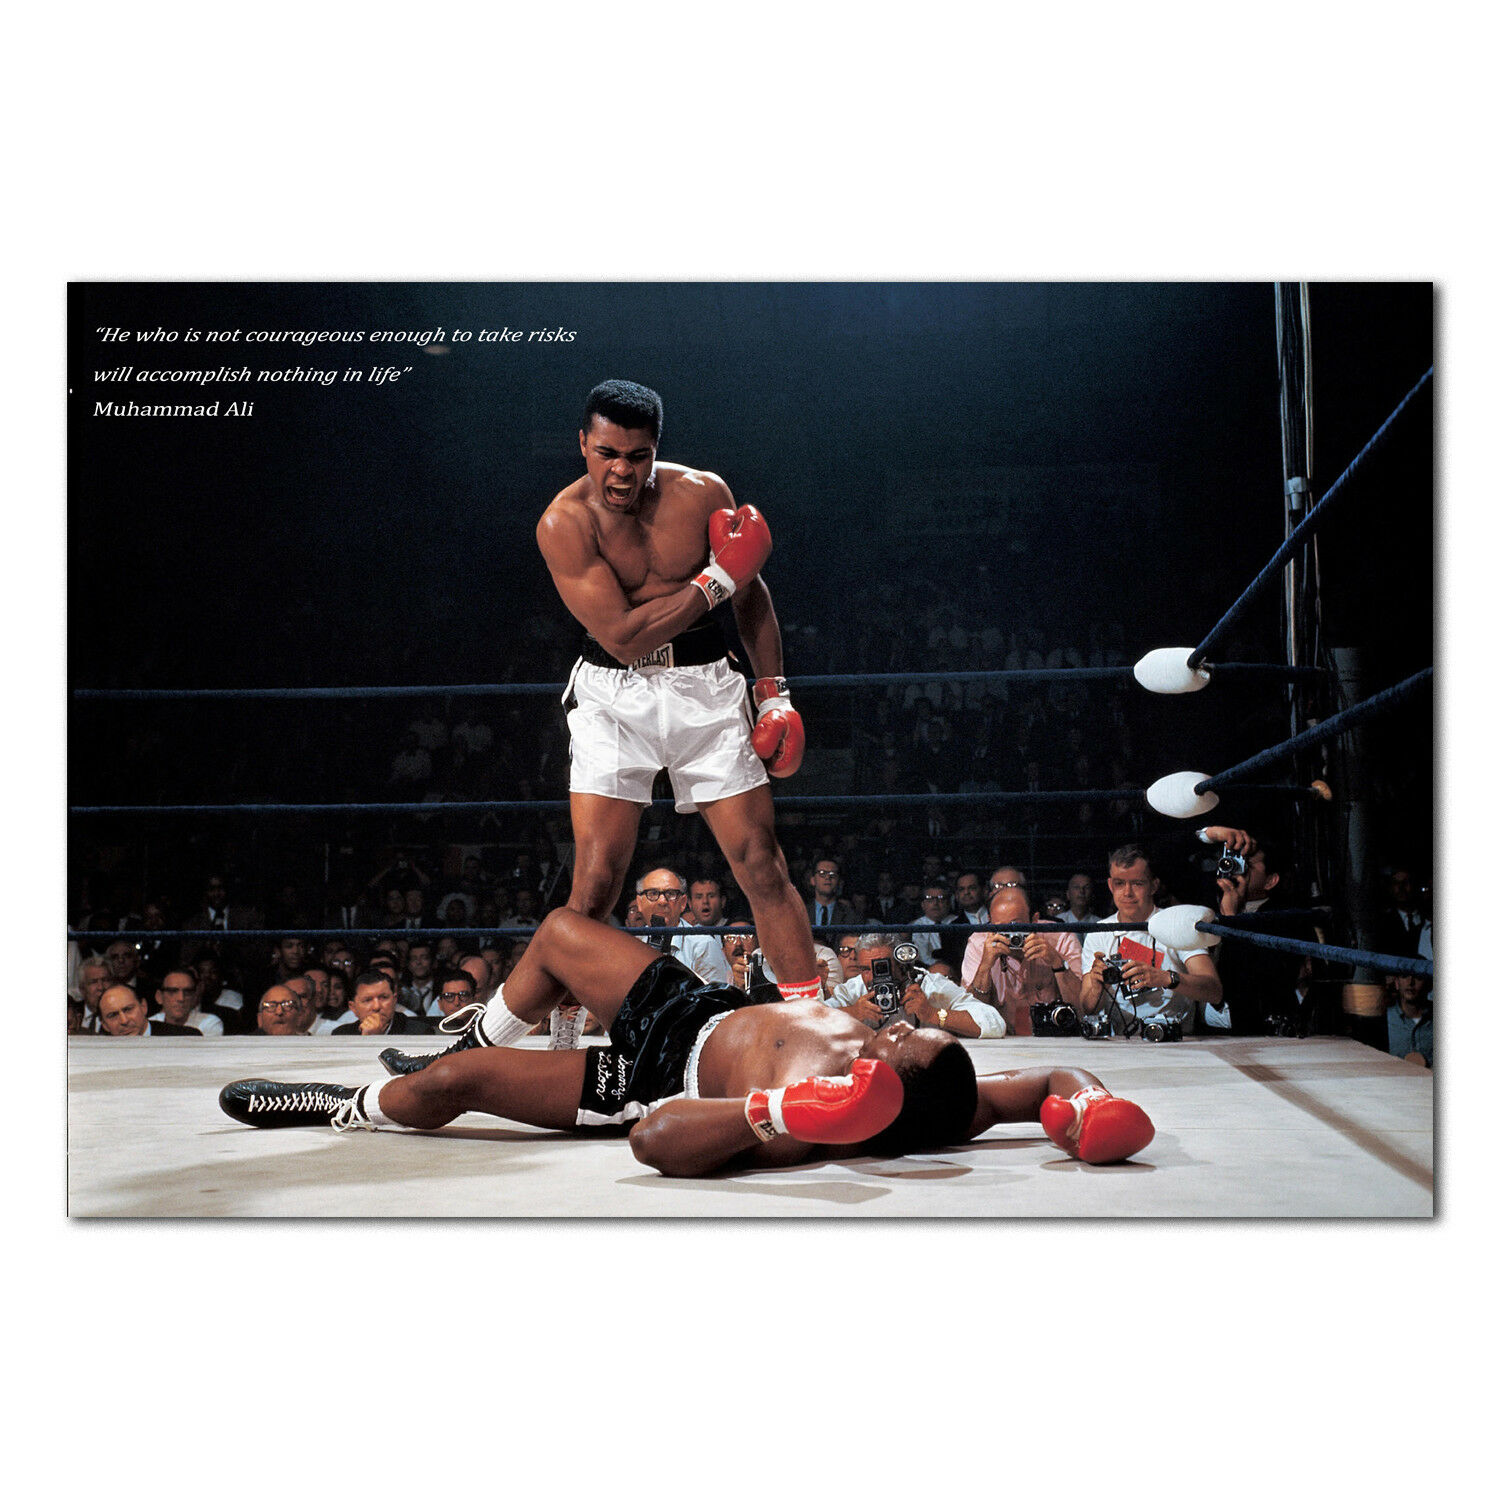 Muhammad Ali 24x36 inch rolled wall poster